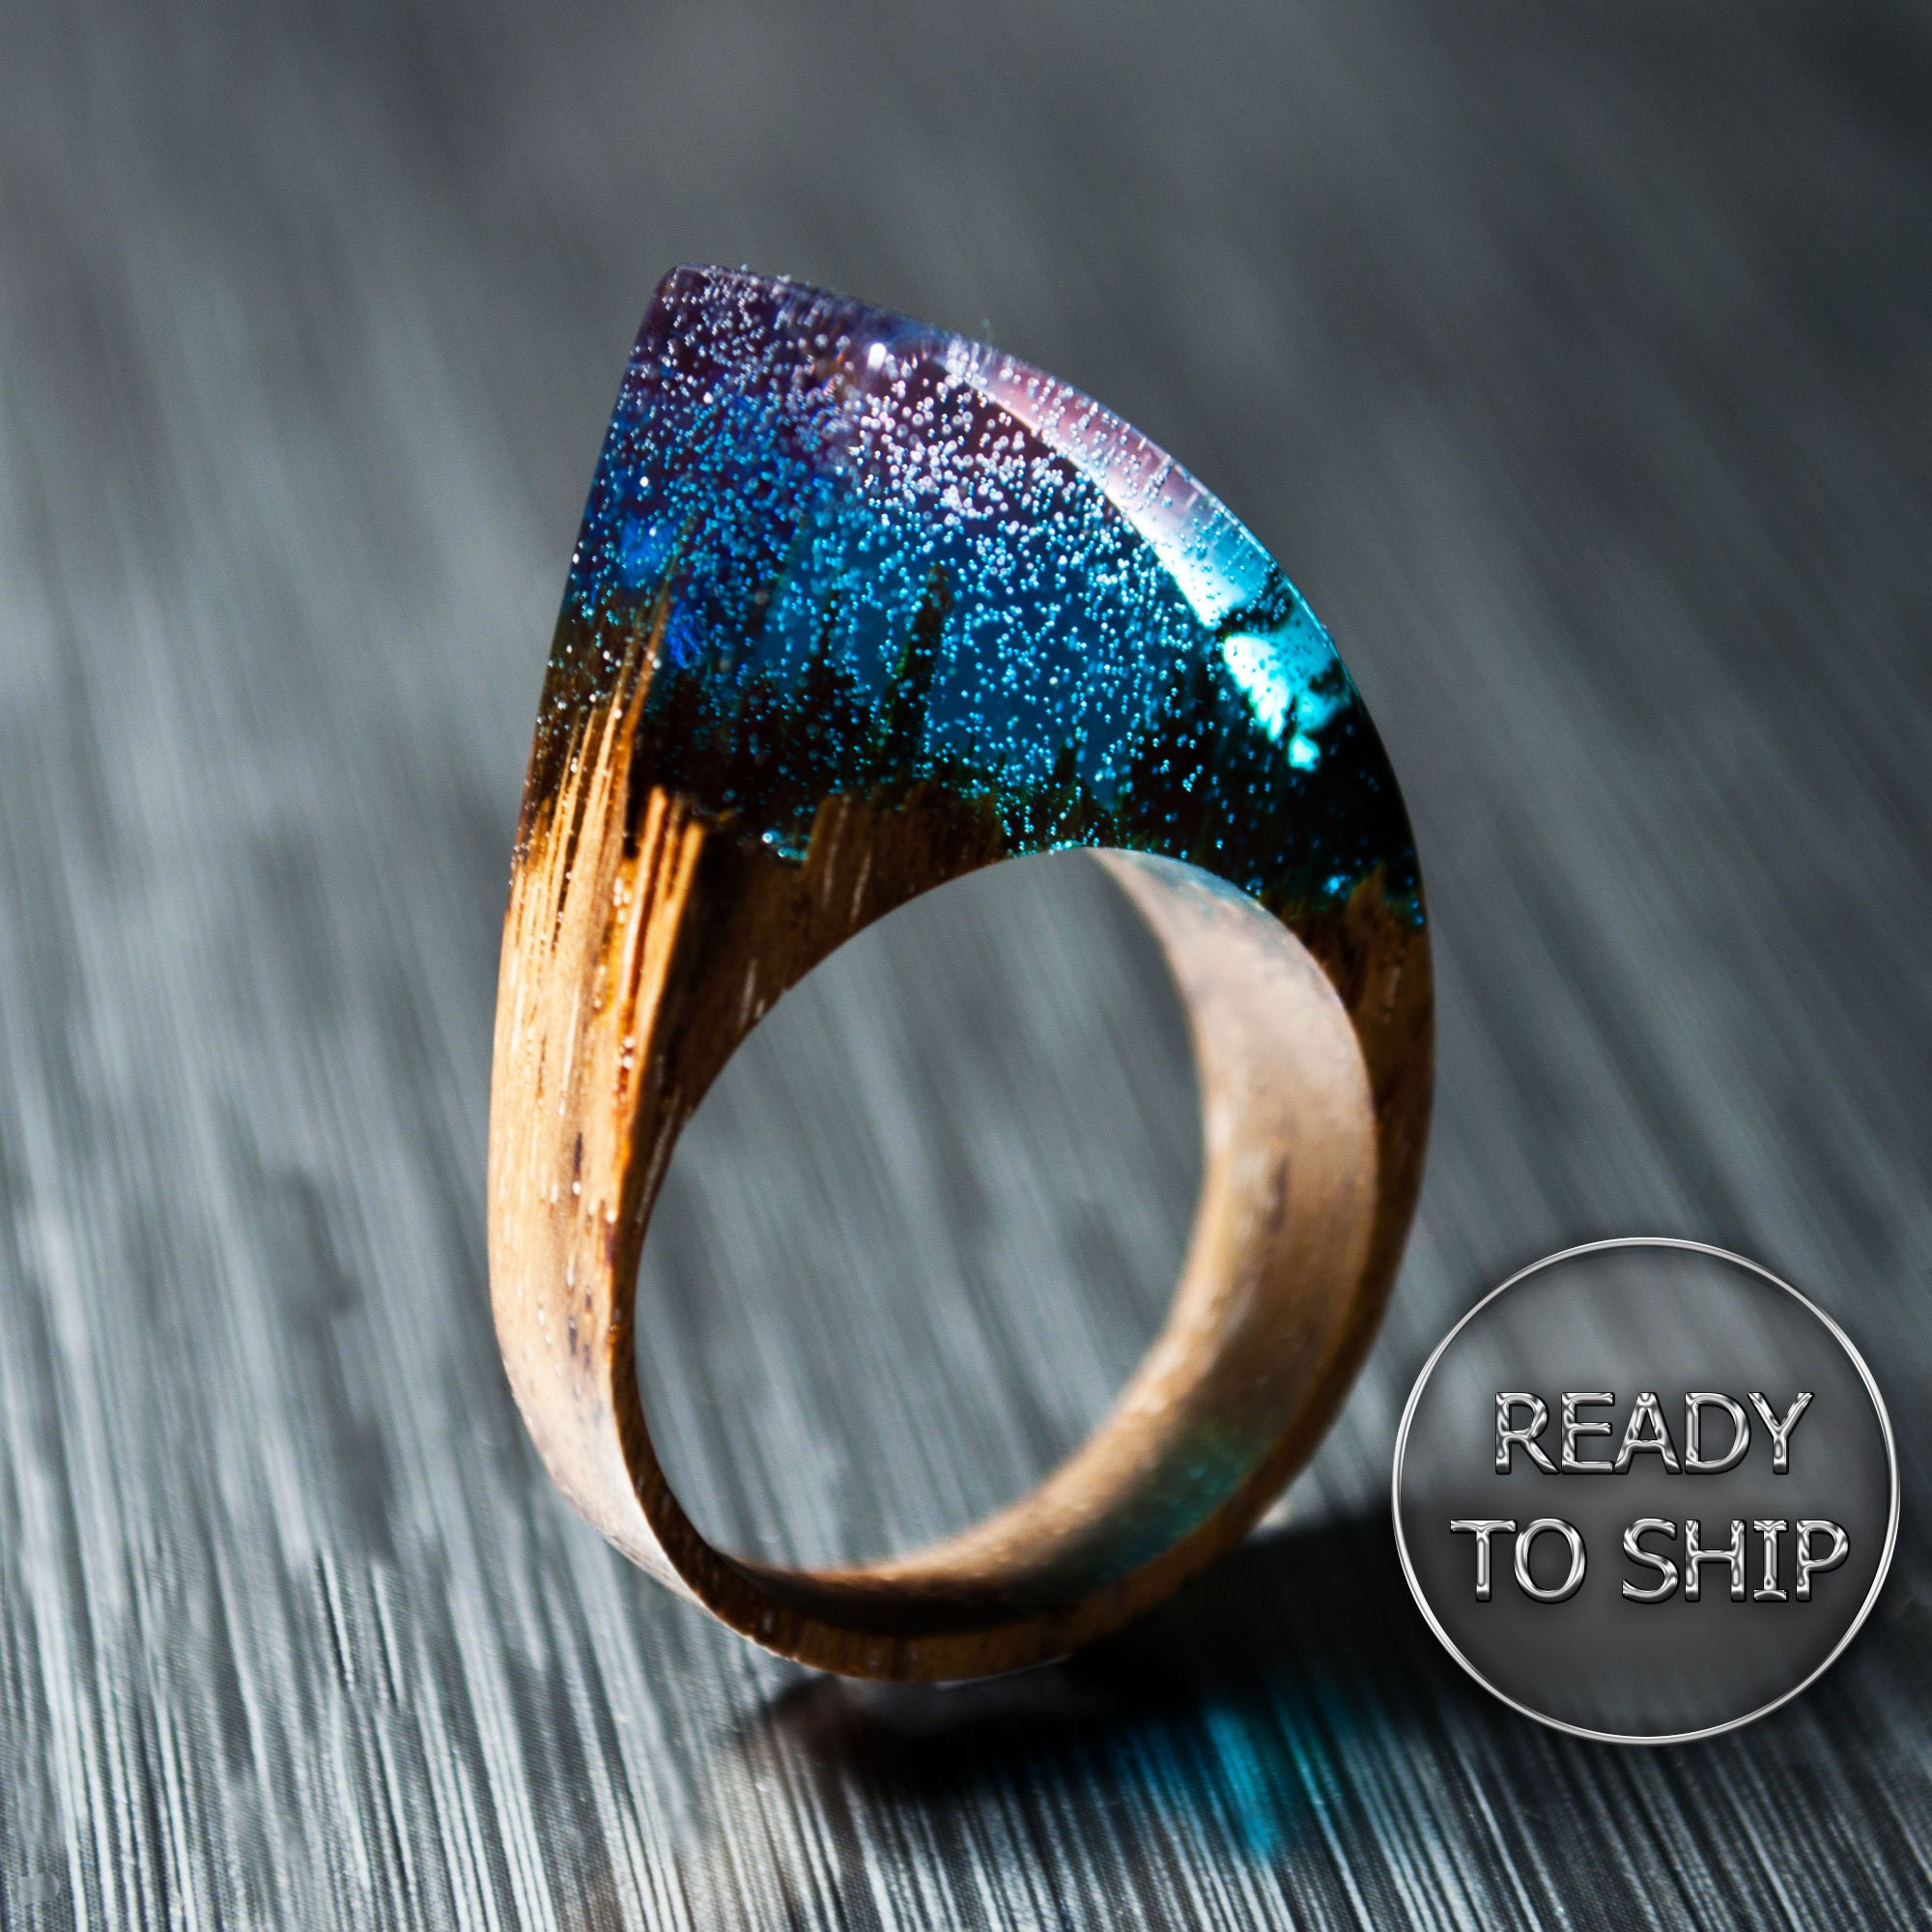 Wooden Resin Ring Custom Fit Makes Beautiful 5th Anniversary Gift and Wood Anniversary Gift for Her Ring Resin Ring Red